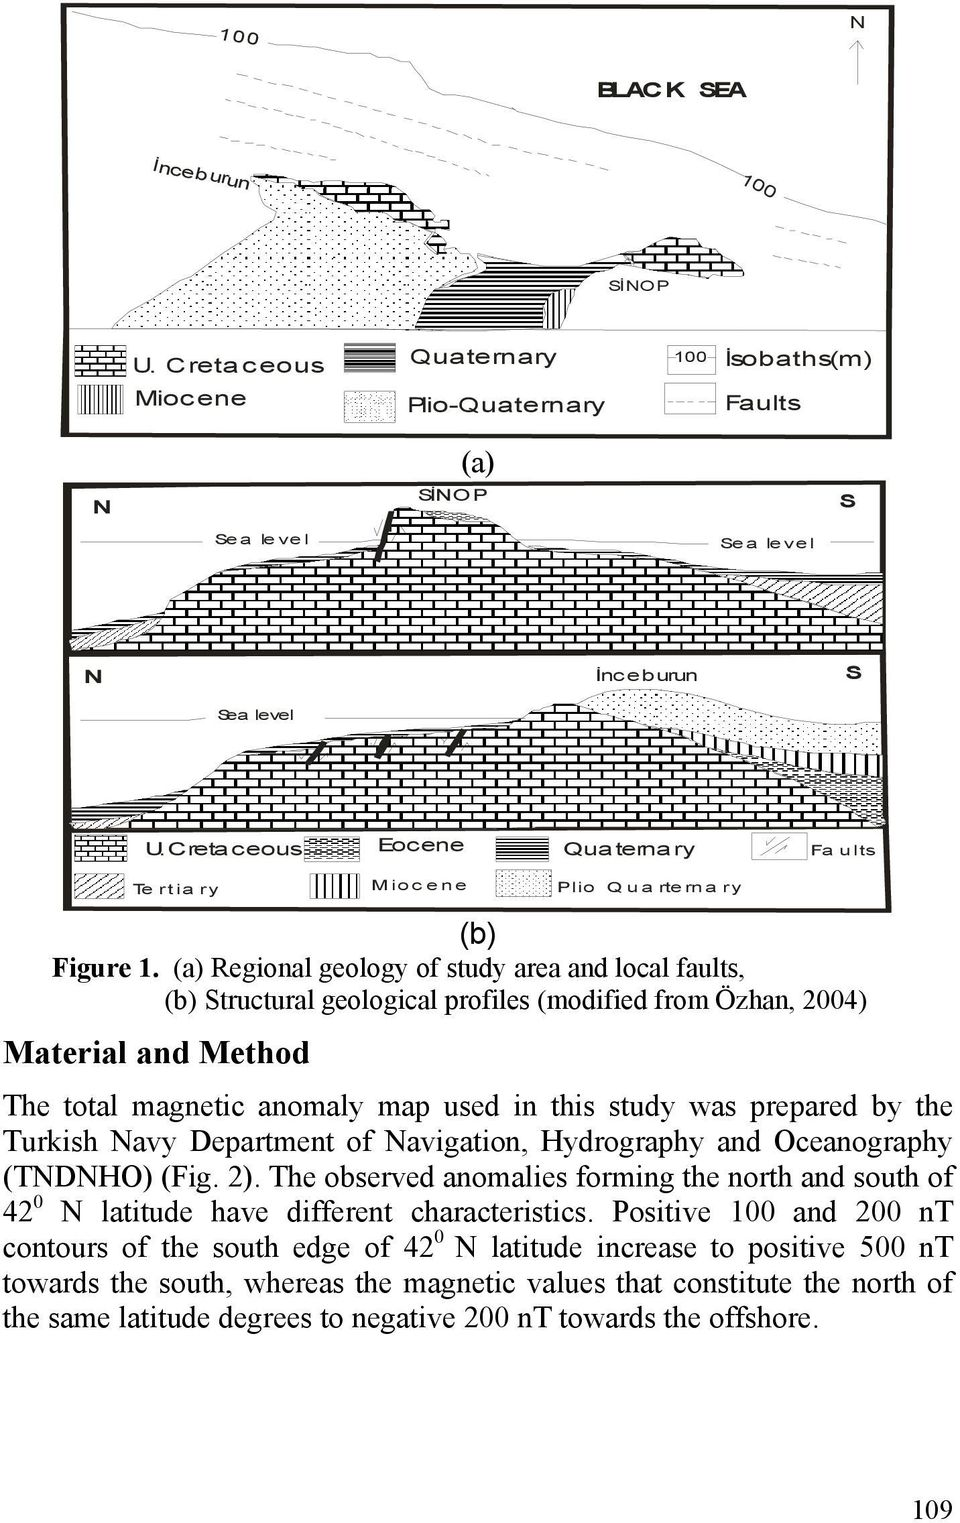 (a) Regional geology of study area and local faults, (b) Structural geological profiles (modified from Özhan, 24) Material and Method The total magnetic anomaly map used in this study was prepared by